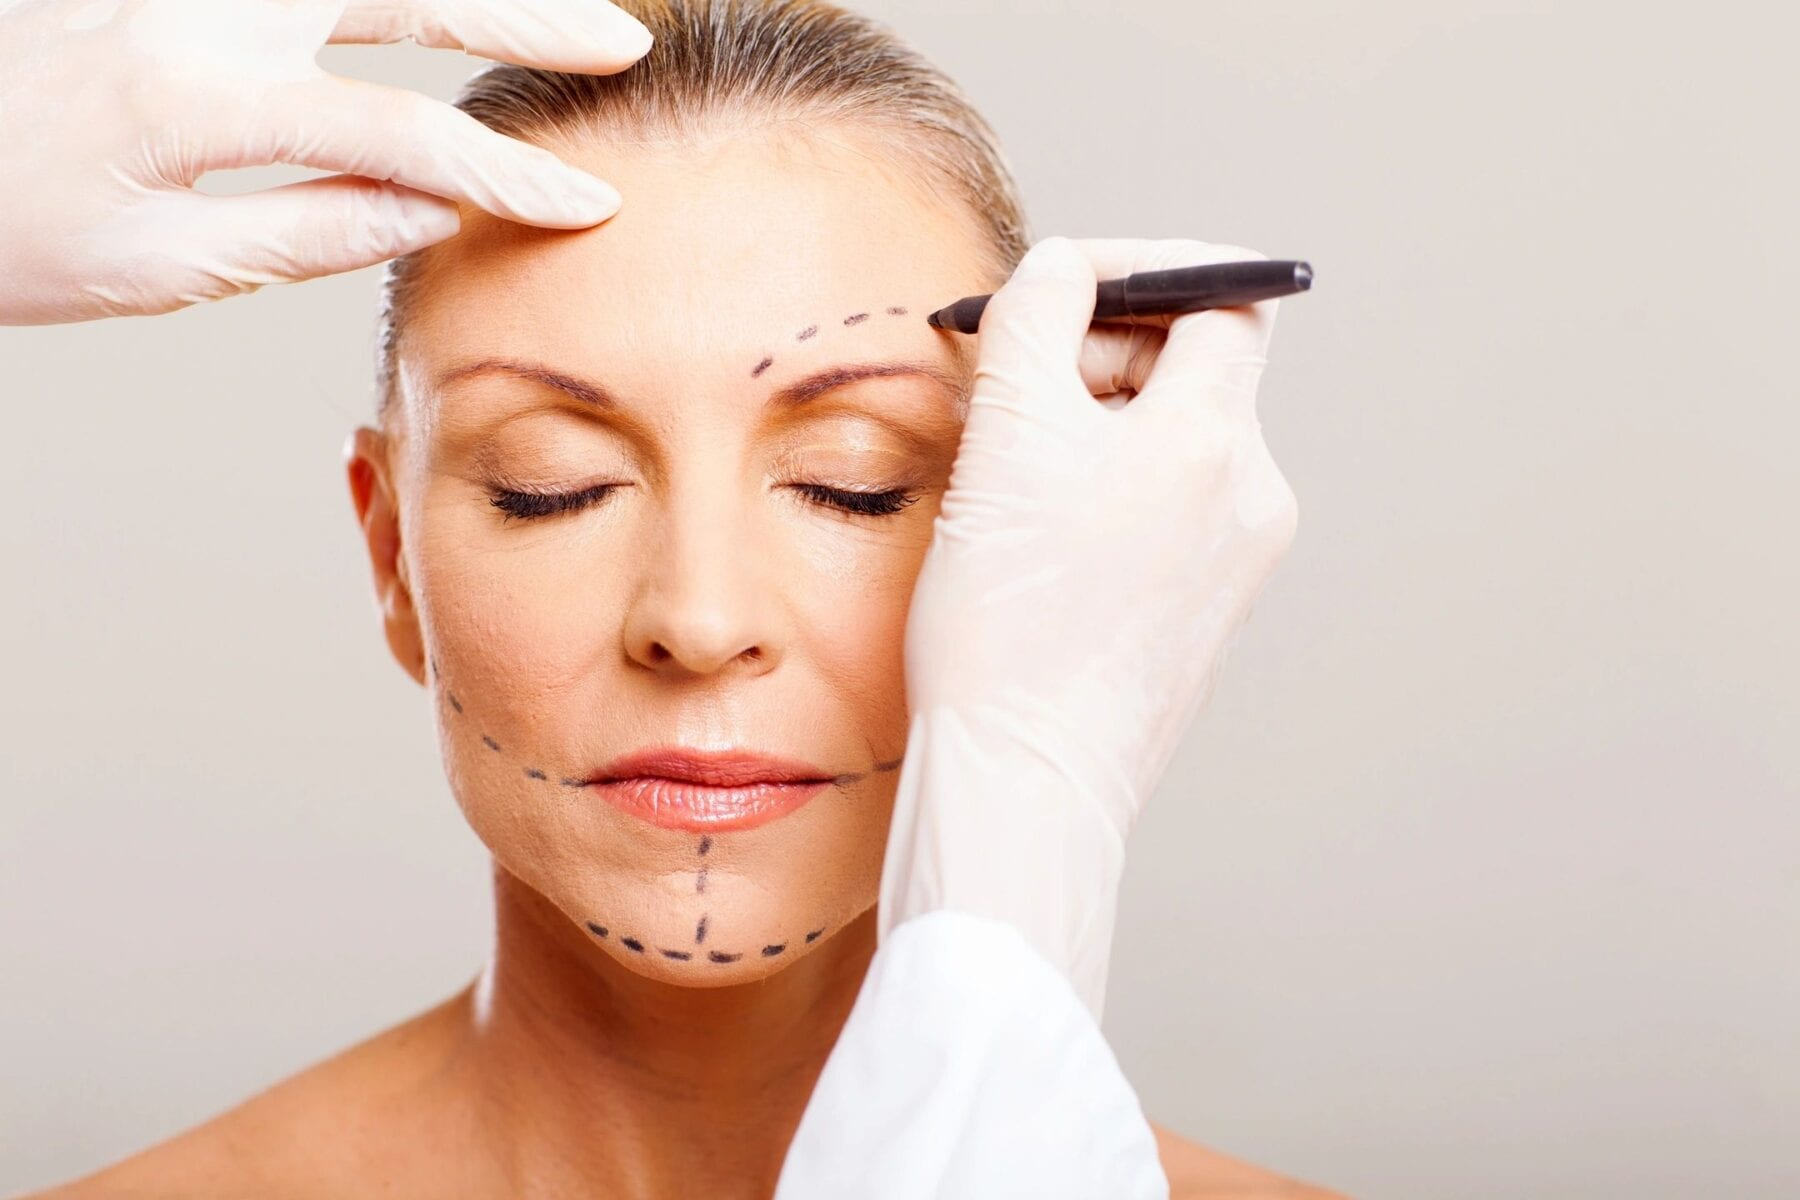 Thailand: 5 Amazing Facts About Thailand and How It Became a Top Plastic Surgery Destination